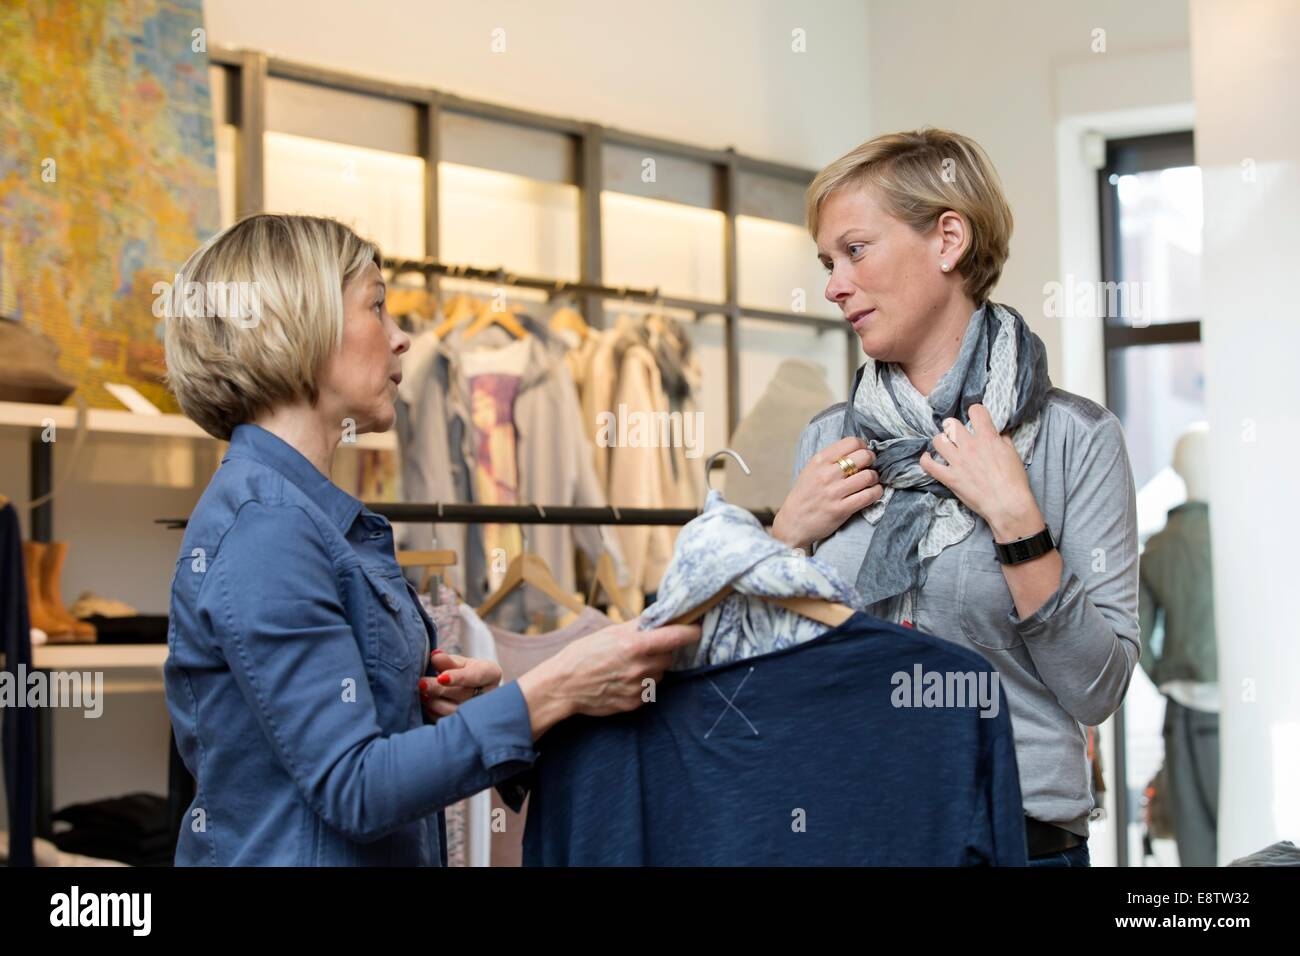 shop assistant is serving a customer stock photo royalty shop assistant is serving a customer